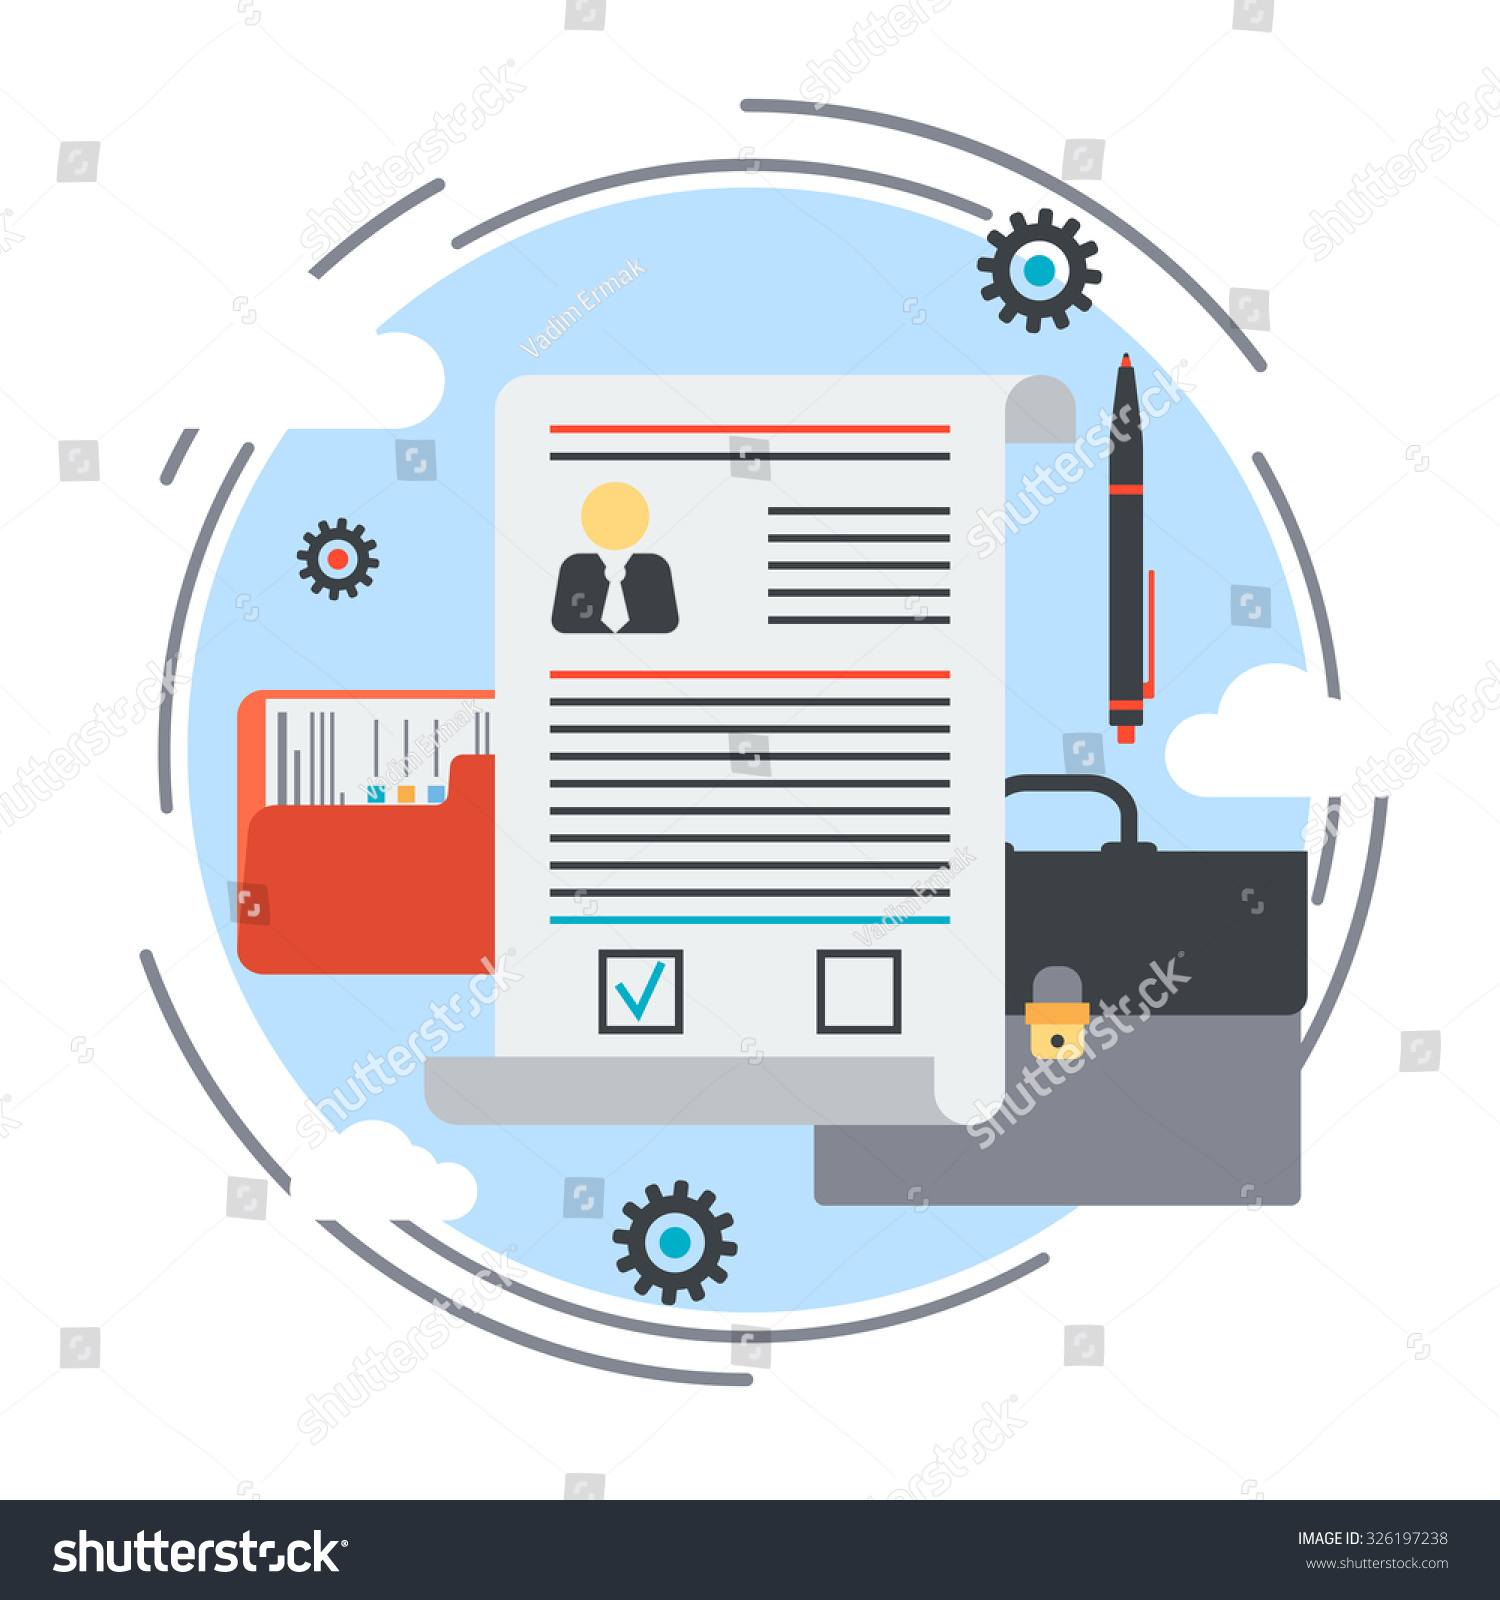 business portfolio employment issue resume job stock vector business portfolio employment issue resume job search contract conclusion flat design style